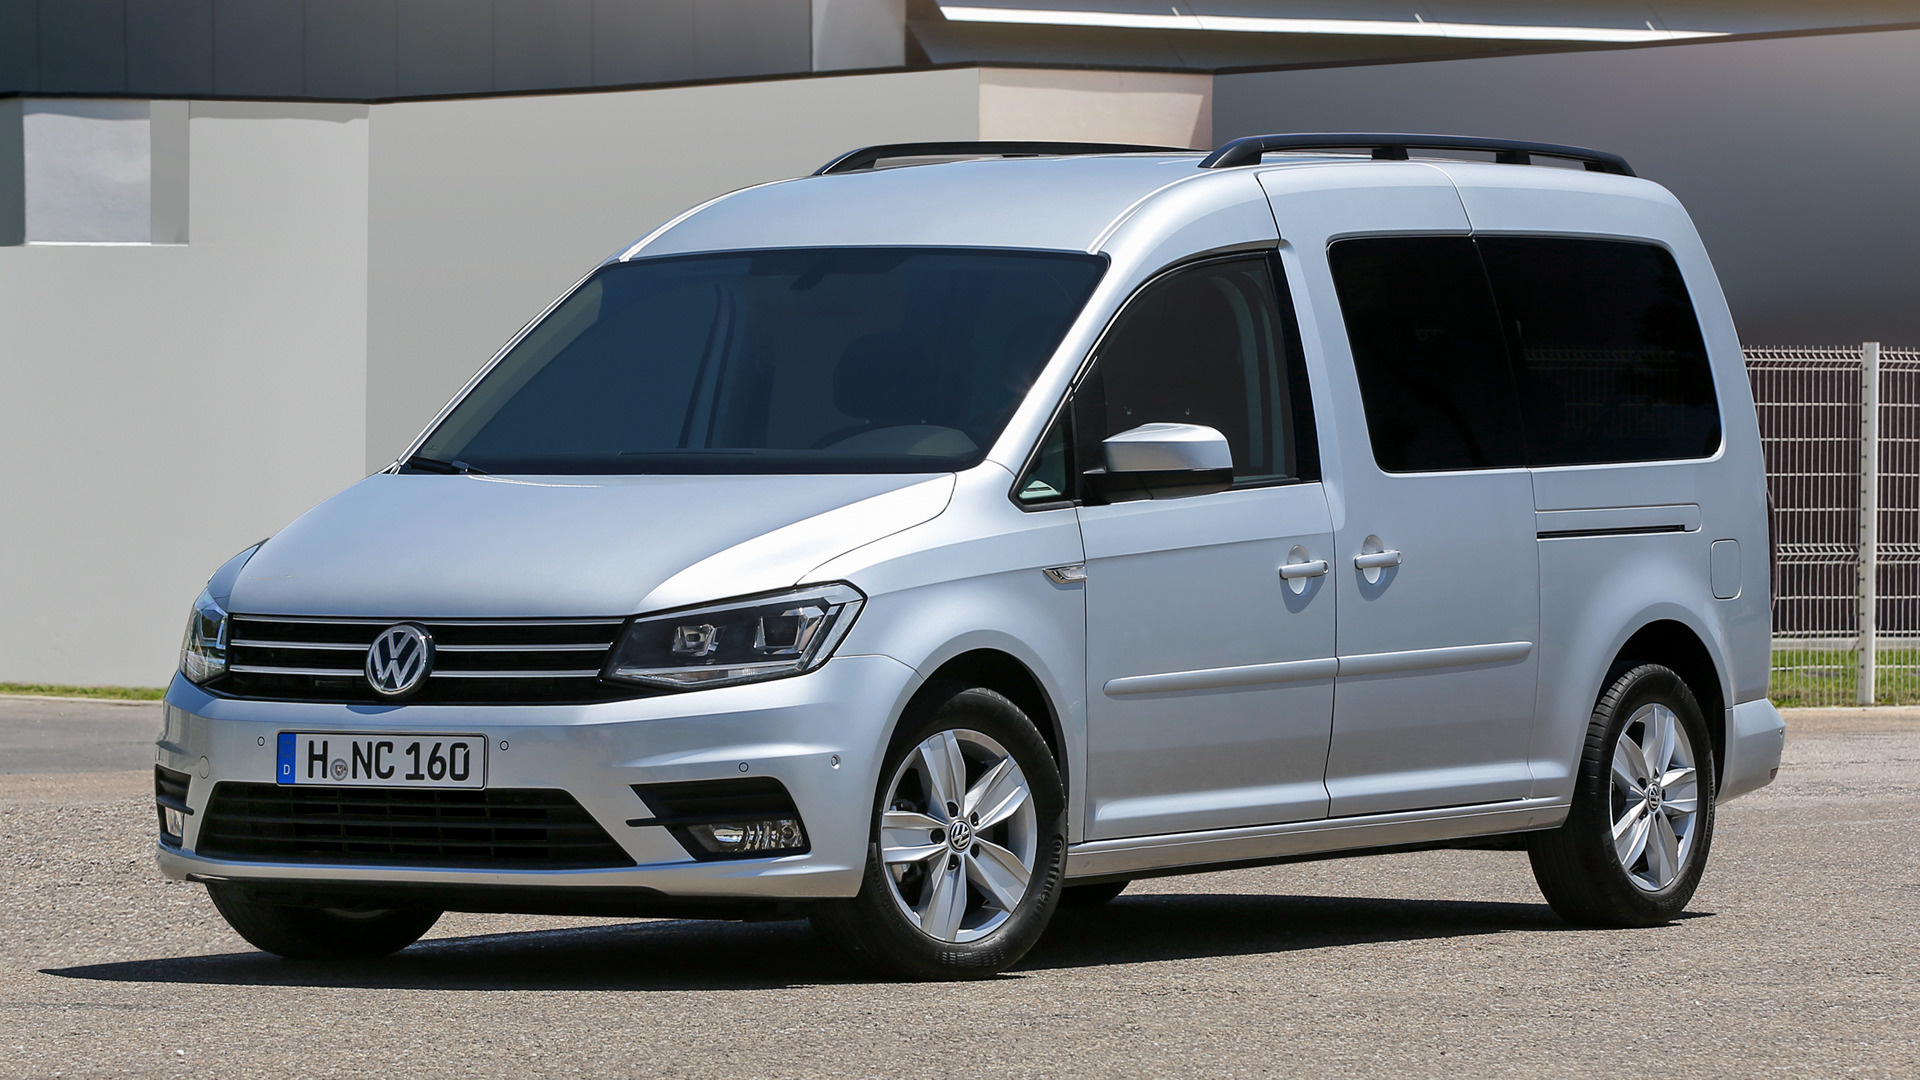 volkswagen caddy maxi 2015 wallpapers and hd images car pixel. Black Bedroom Furniture Sets. Home Design Ideas